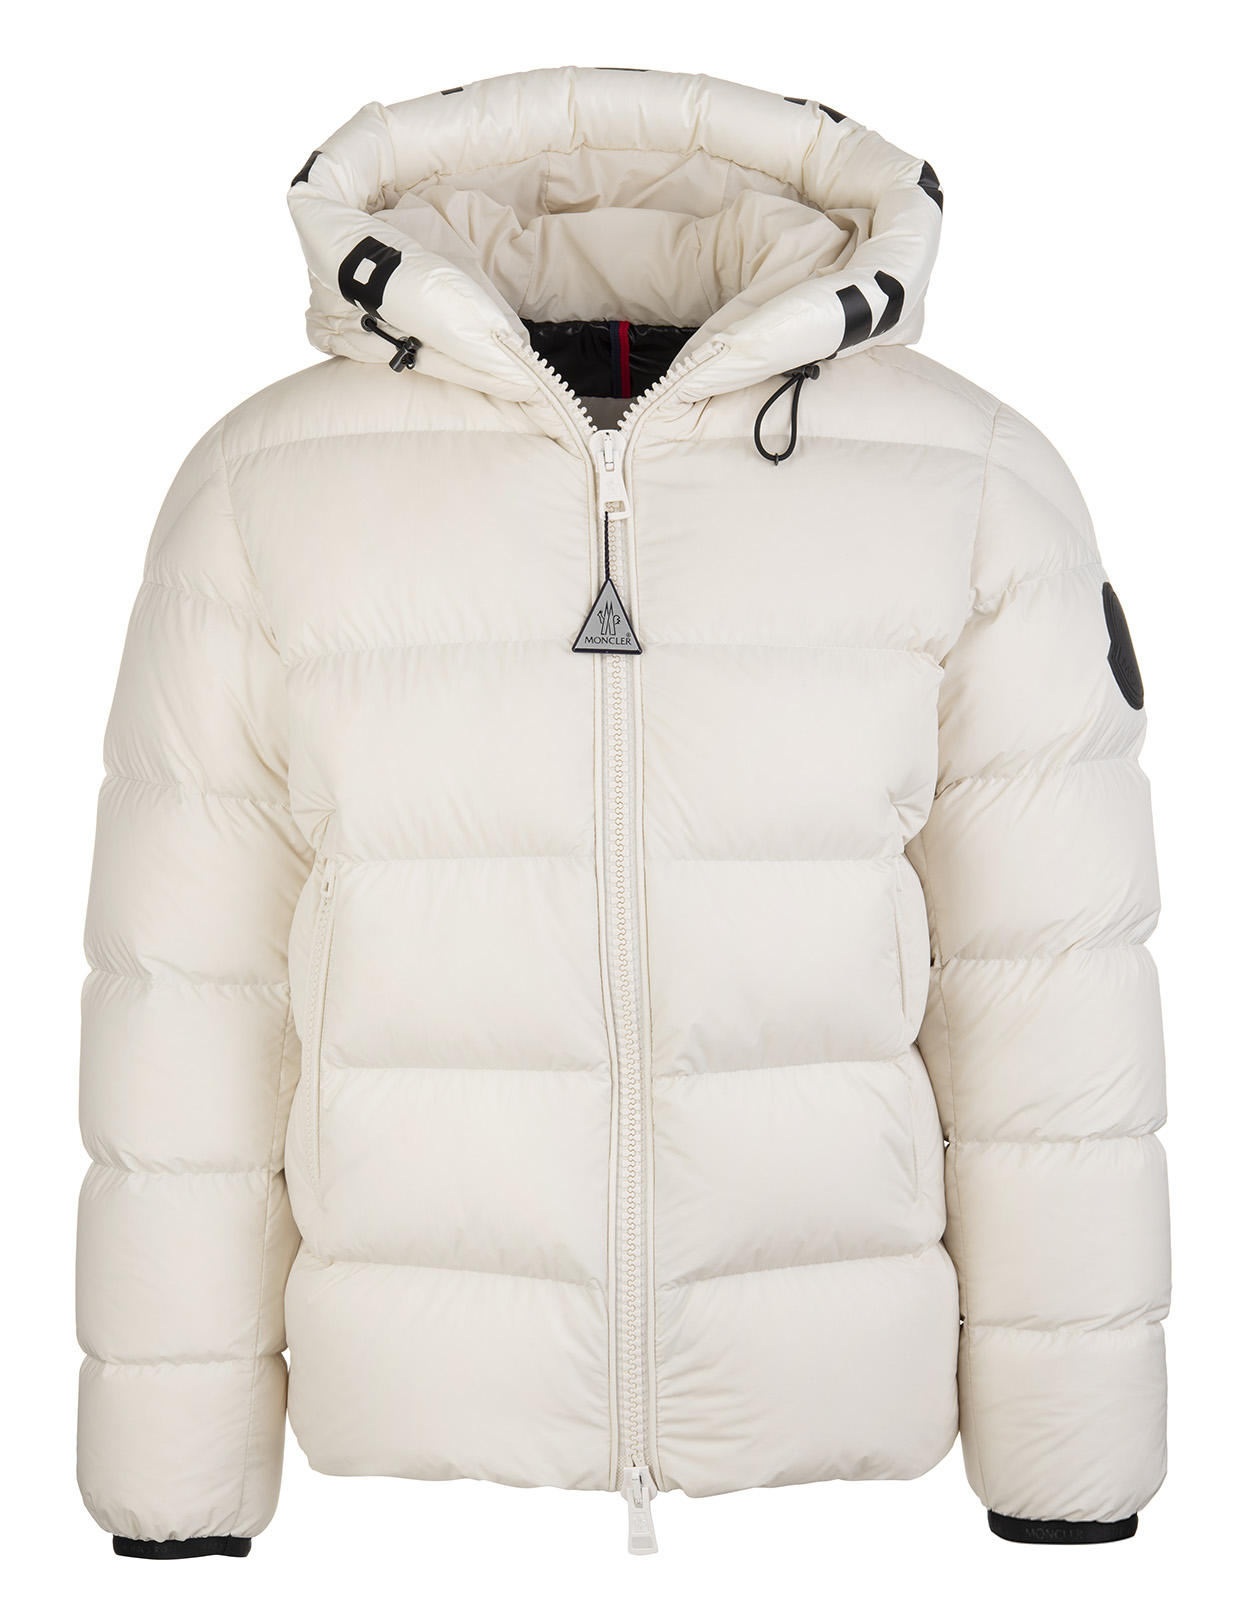 90ab6f333 White Dubois Down Jacket